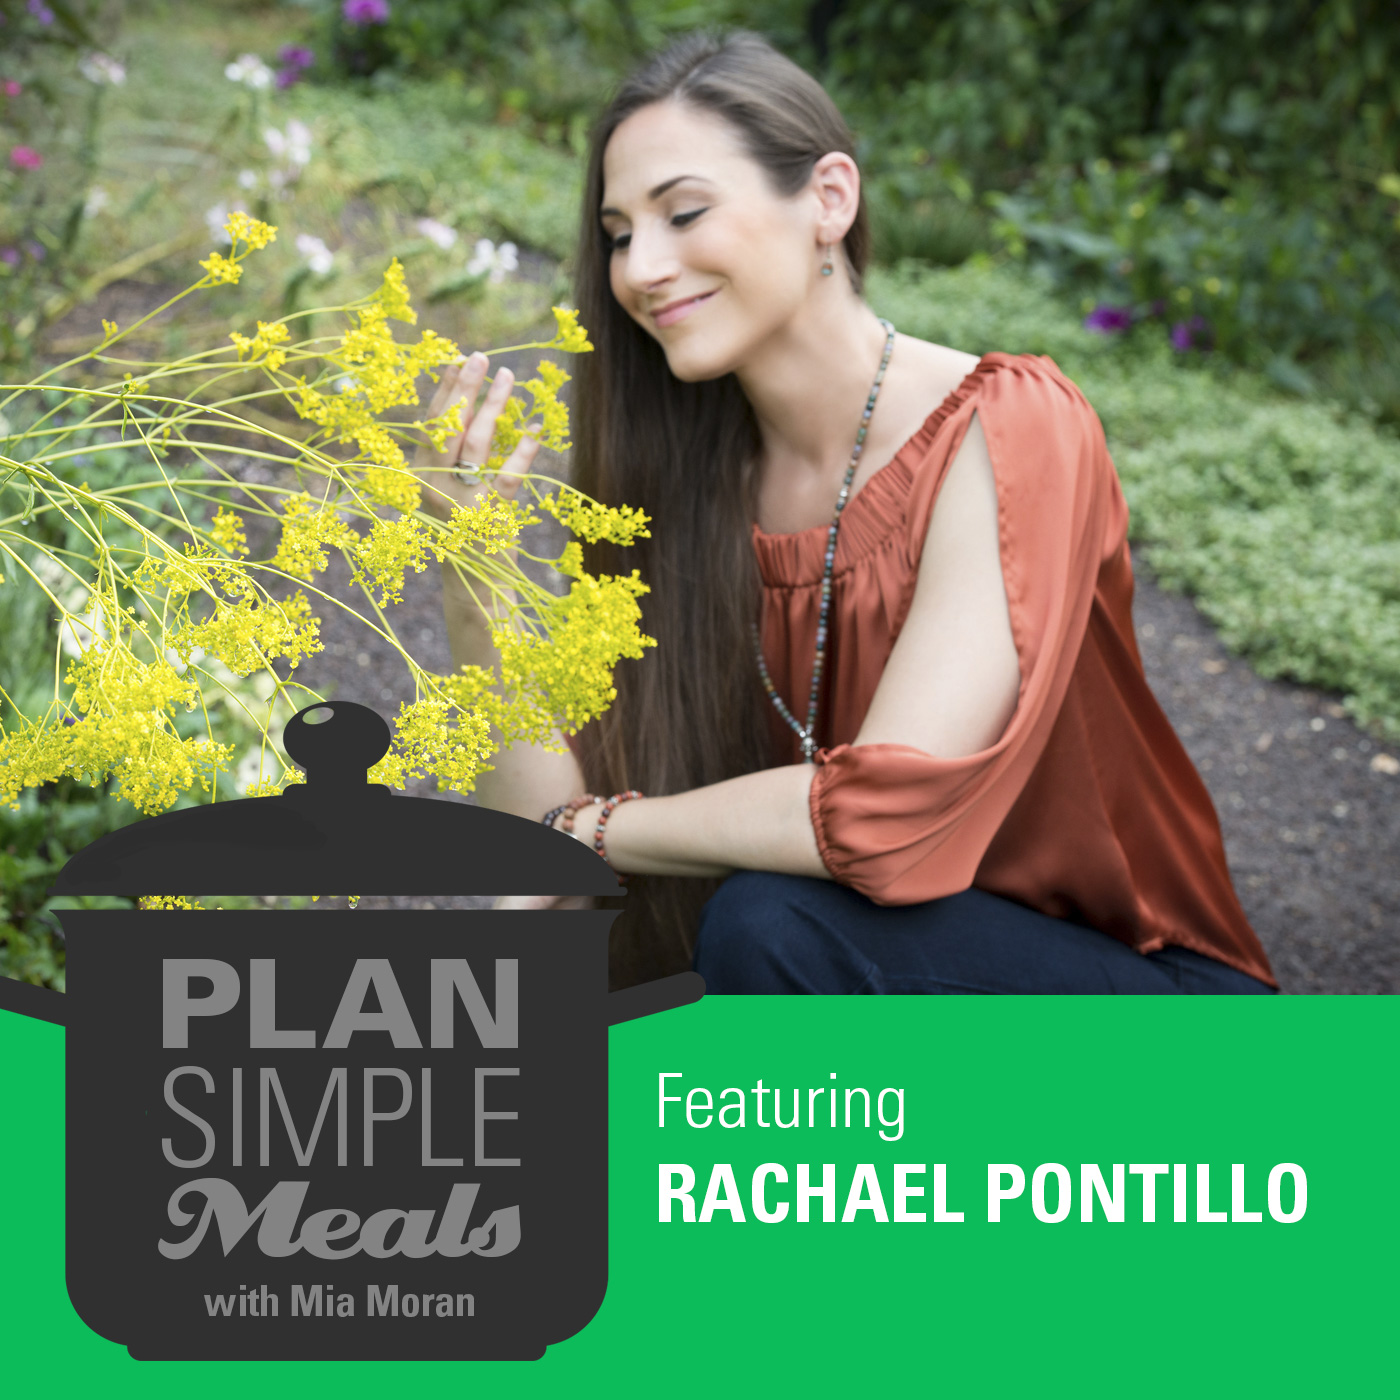 Our Skin With Rachael Pontillo